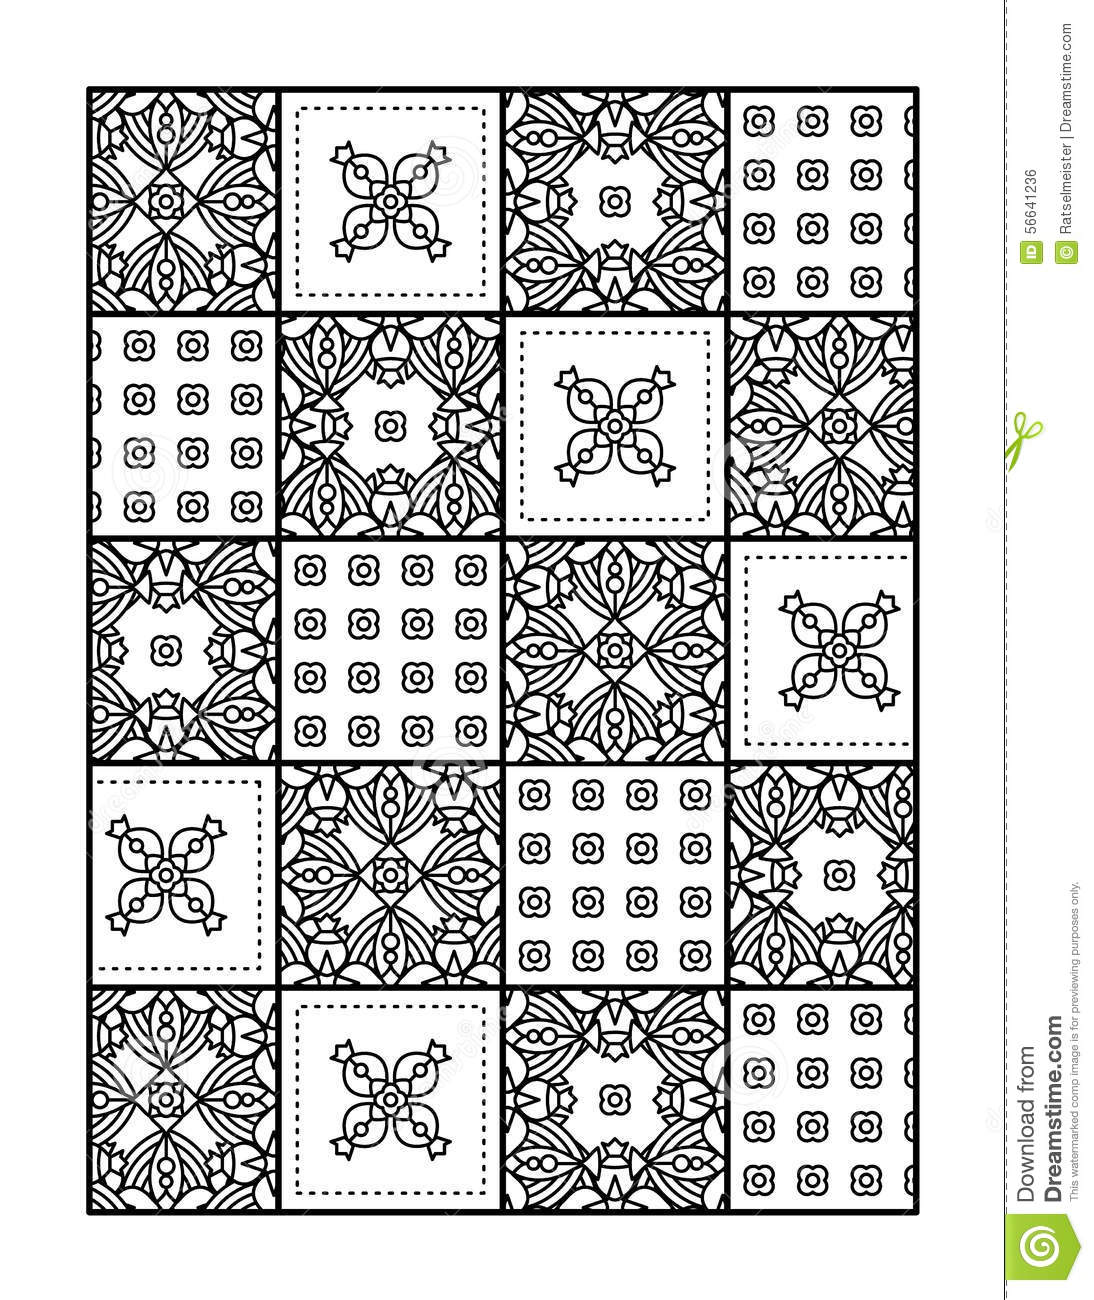 Coloring Page For Adults Or Black And White Ornamental Background Stock Vector